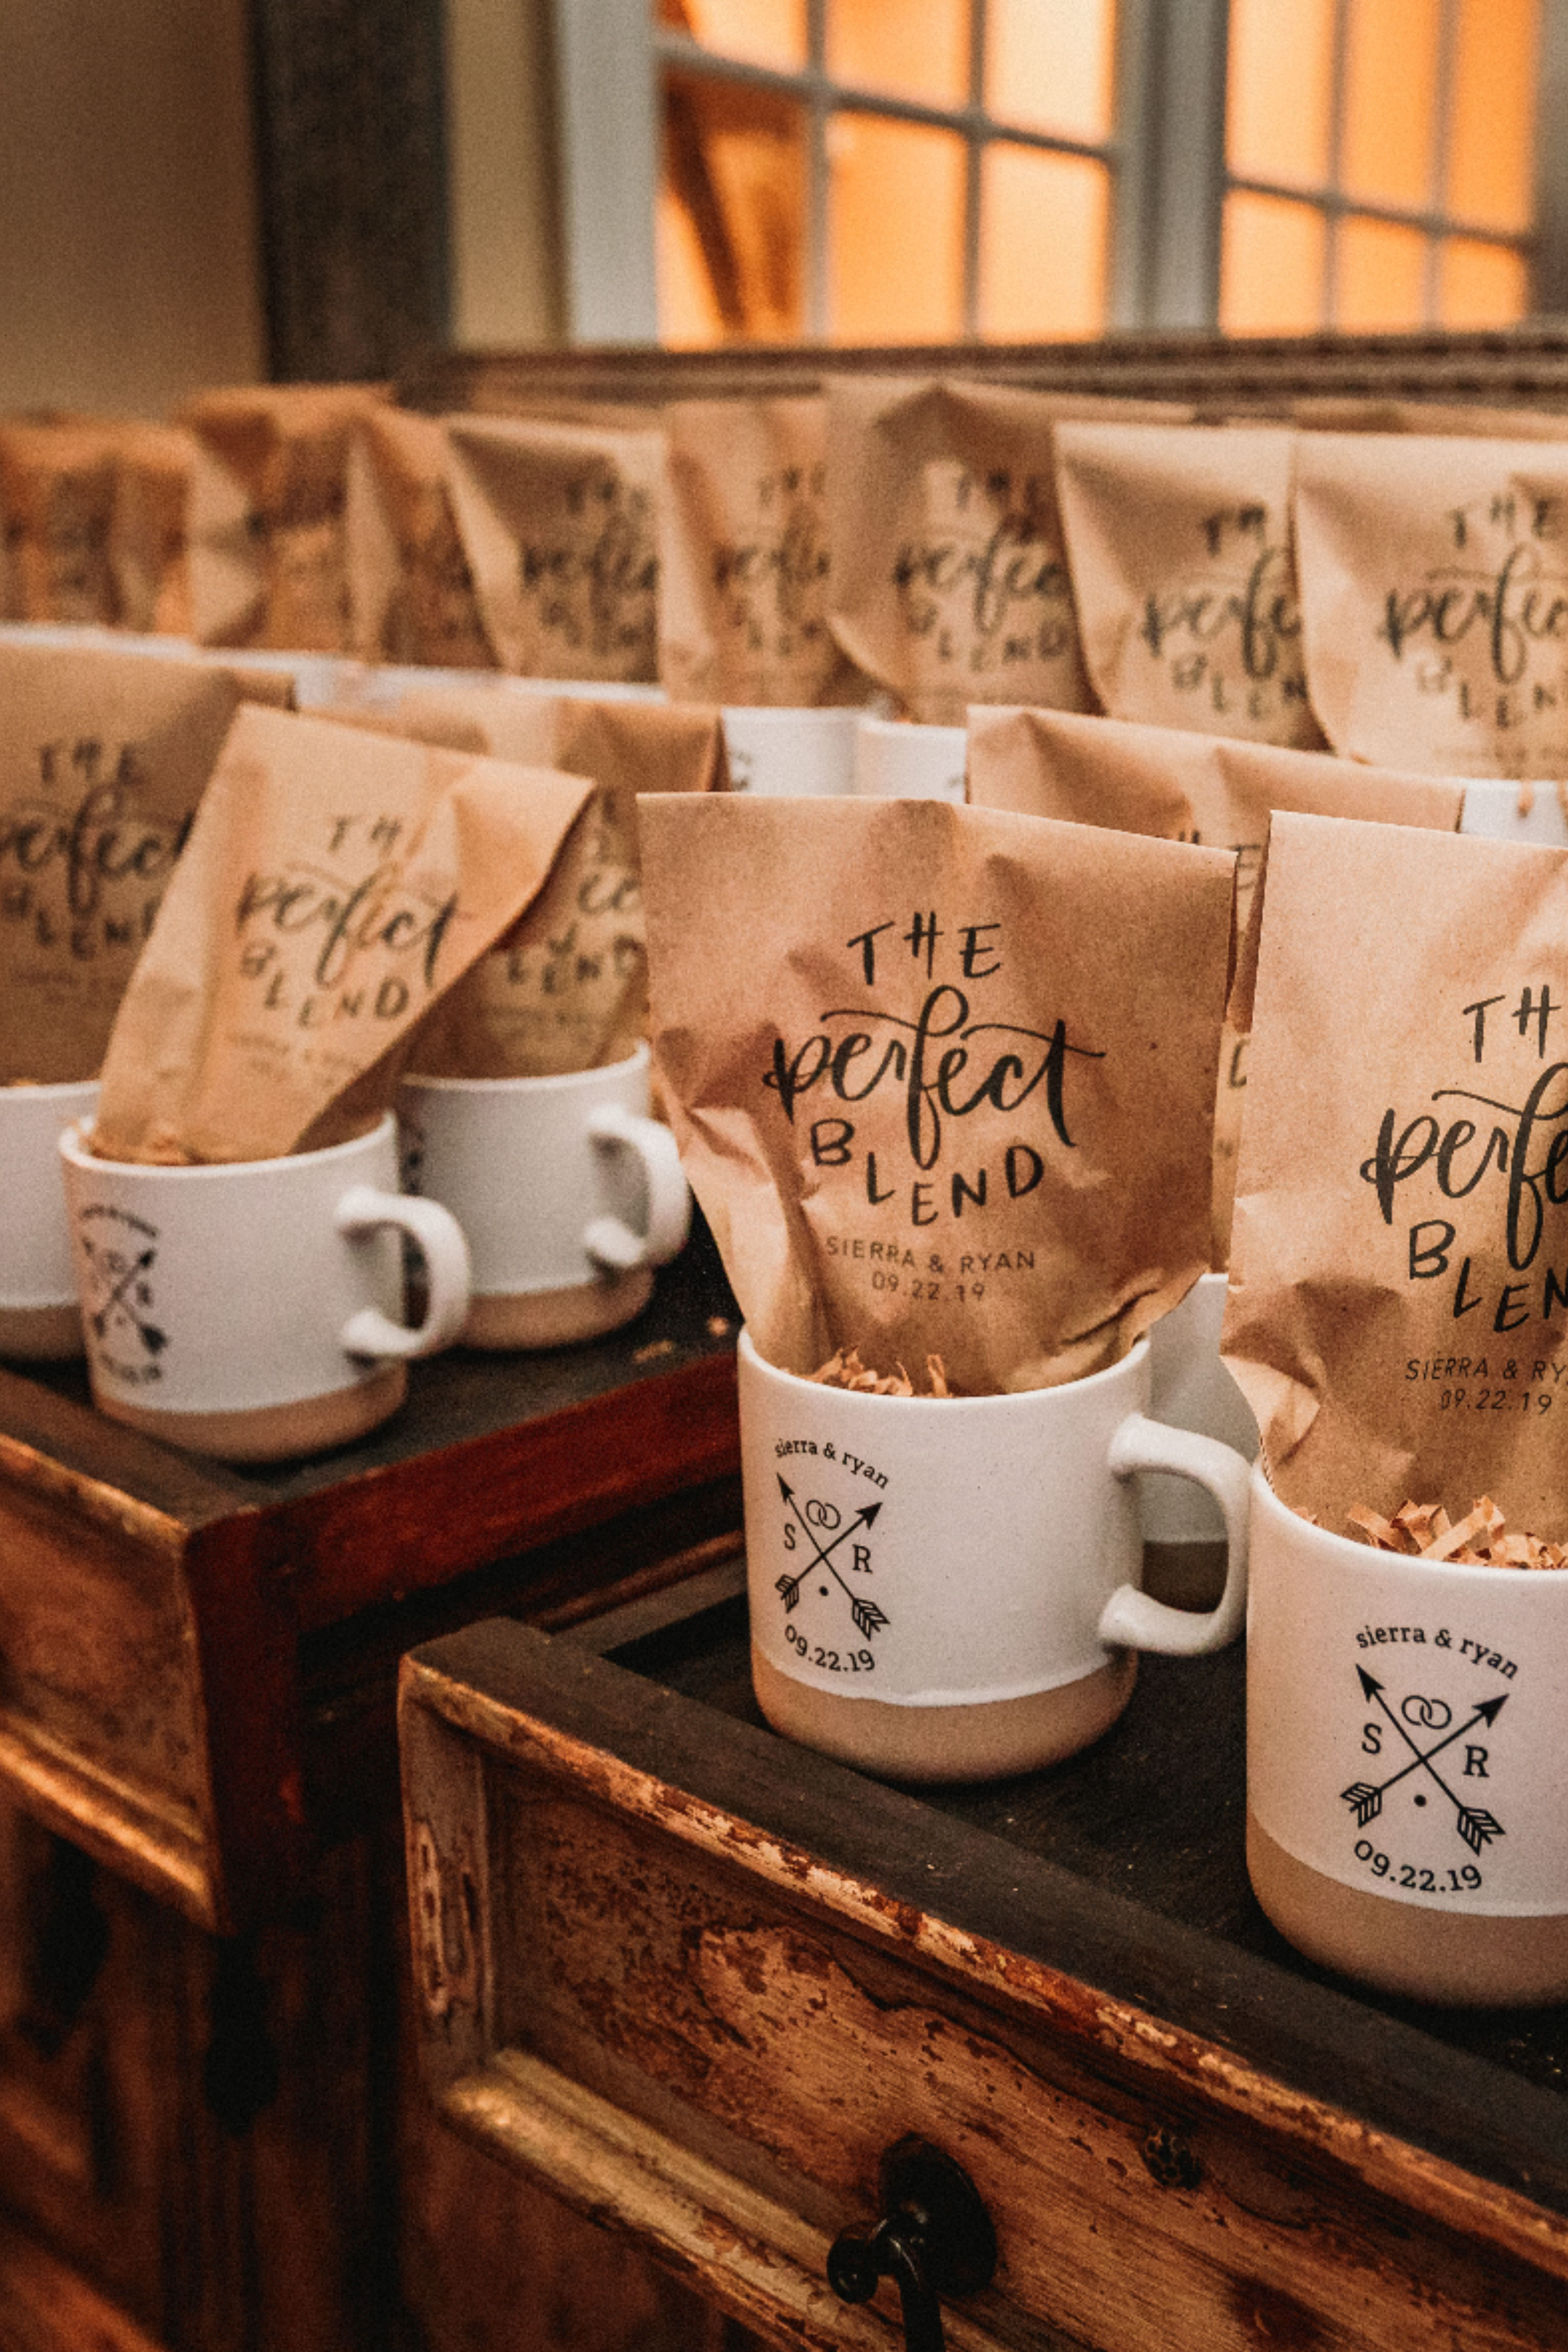 Coffee mug and coffee bean wedding favor that guests will